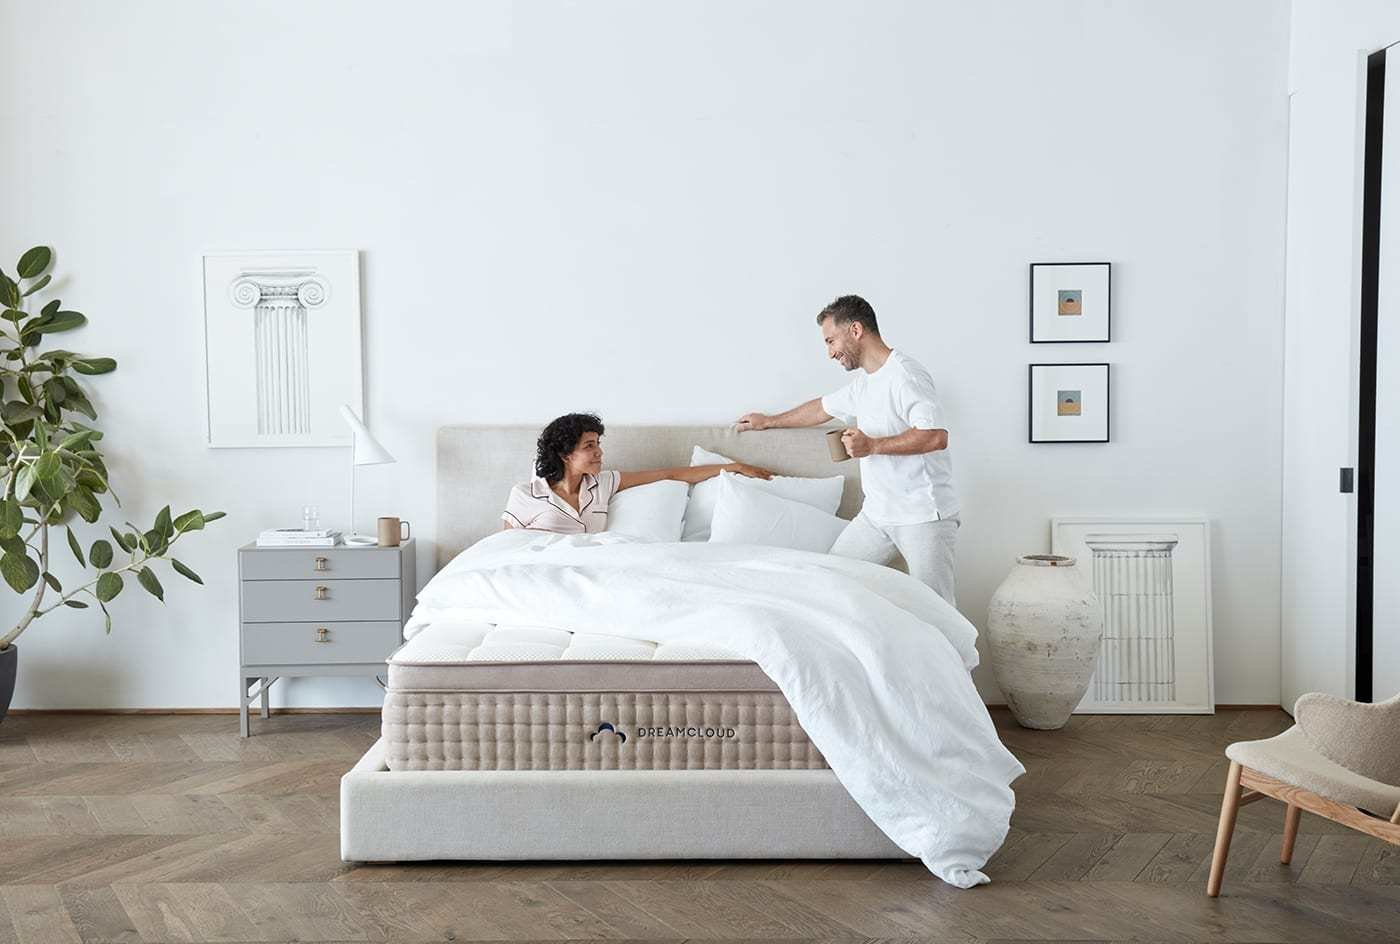 Best 6 Things You Need For The Bedroom The Ultimate Romantic With Pictures